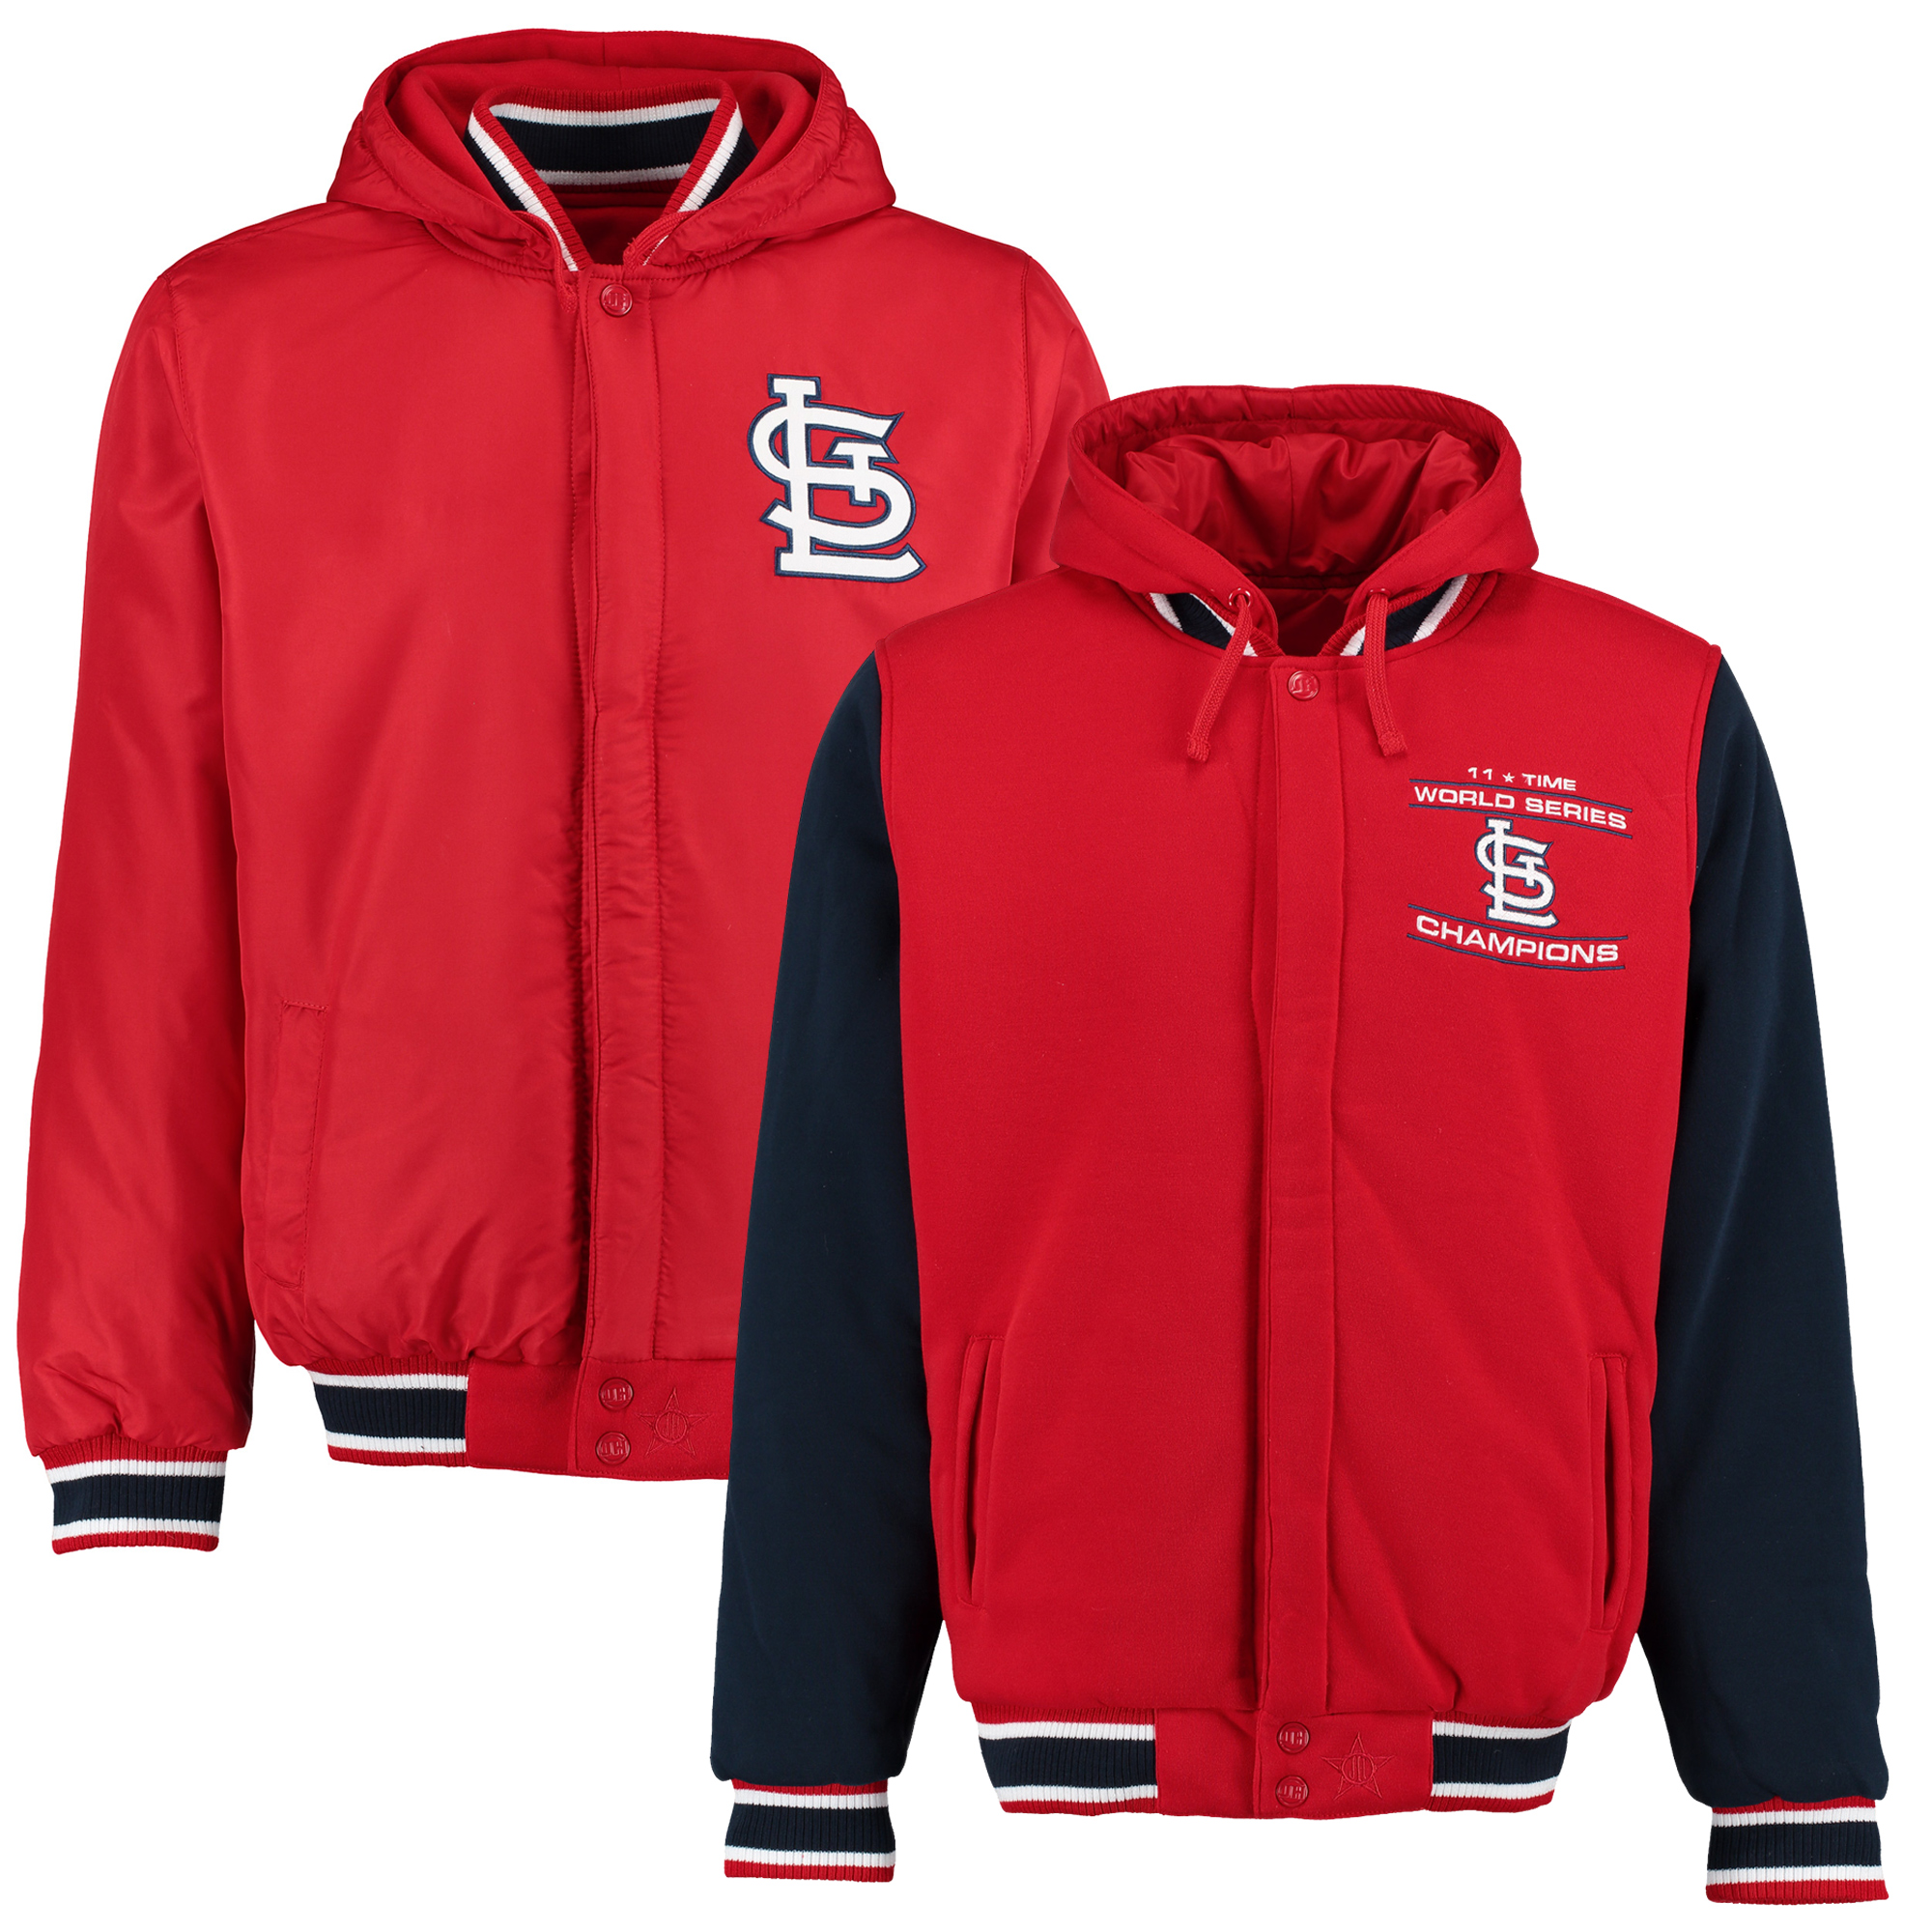 St. Louis Cardinals JH Design World Series Champions Commemorative Reversible Jacket - Red/Navy